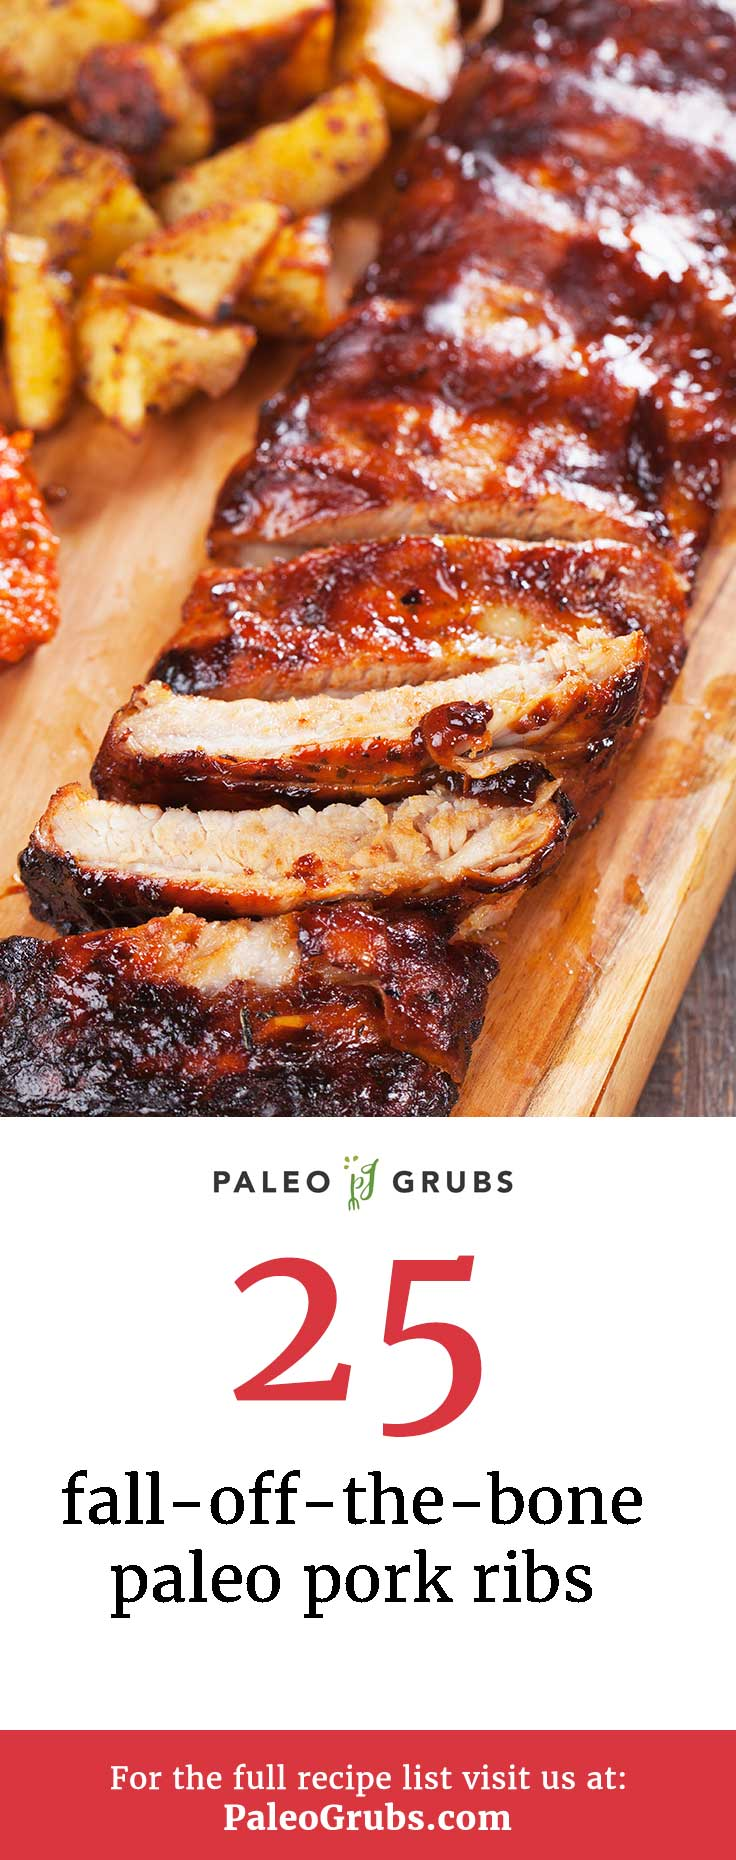 Few things are better than perfectly cooked ribs. Do what I did and try out some of these amazing pork ribs recipes, all perfectly Paleo.  Ah, ribs. Sticky, messy, and perfectly delicious. Great on the grill or in the oven. The possibilities for ribs and their sauces are endless, so try out some of these paleo-friendly recipes for your next barbecue.